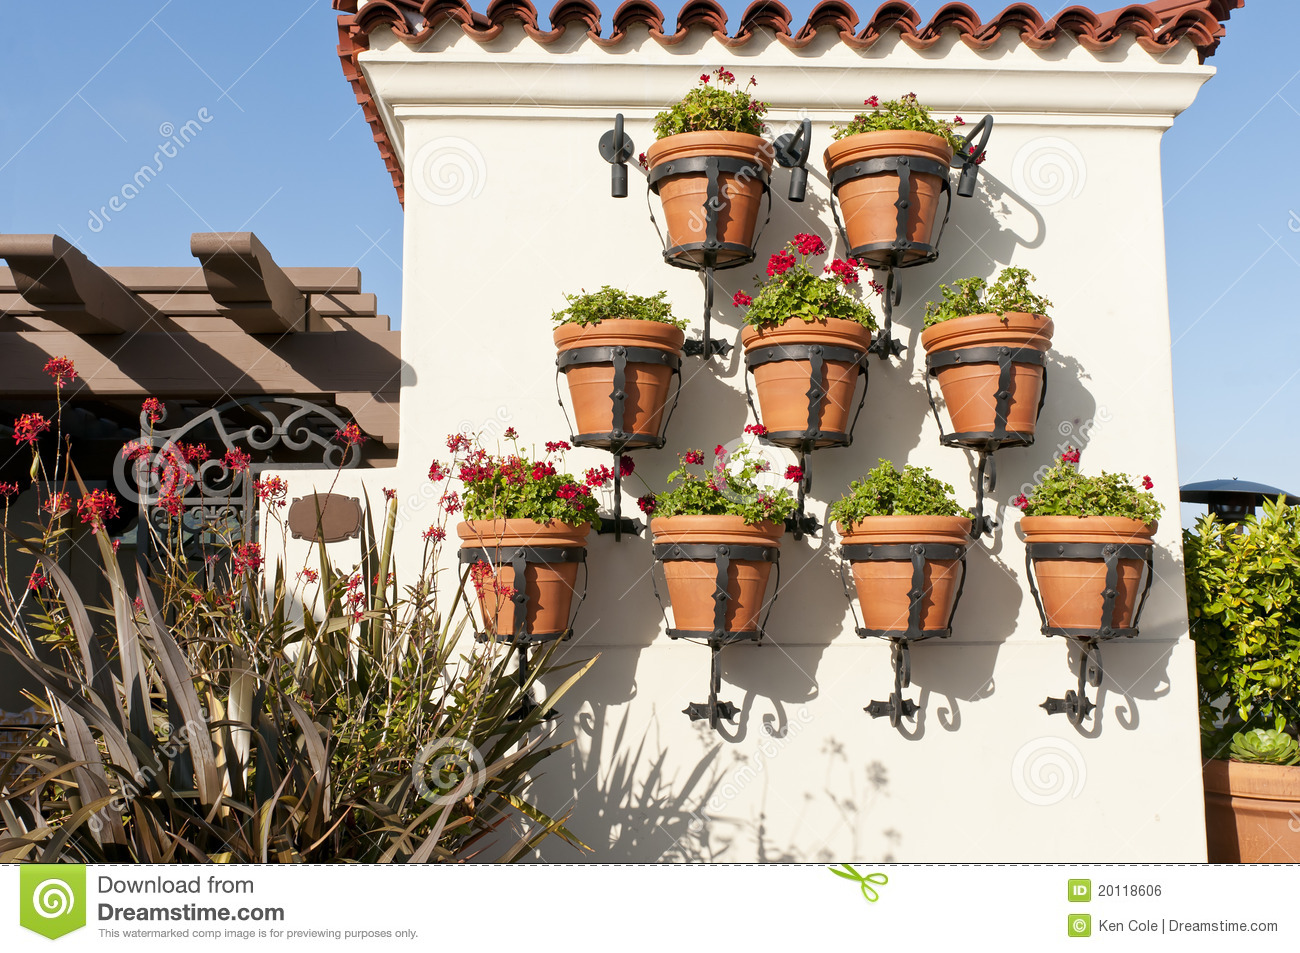 Hanging flower pots royalty free stock image image 20118606 - Flower pots to hang on fence ...